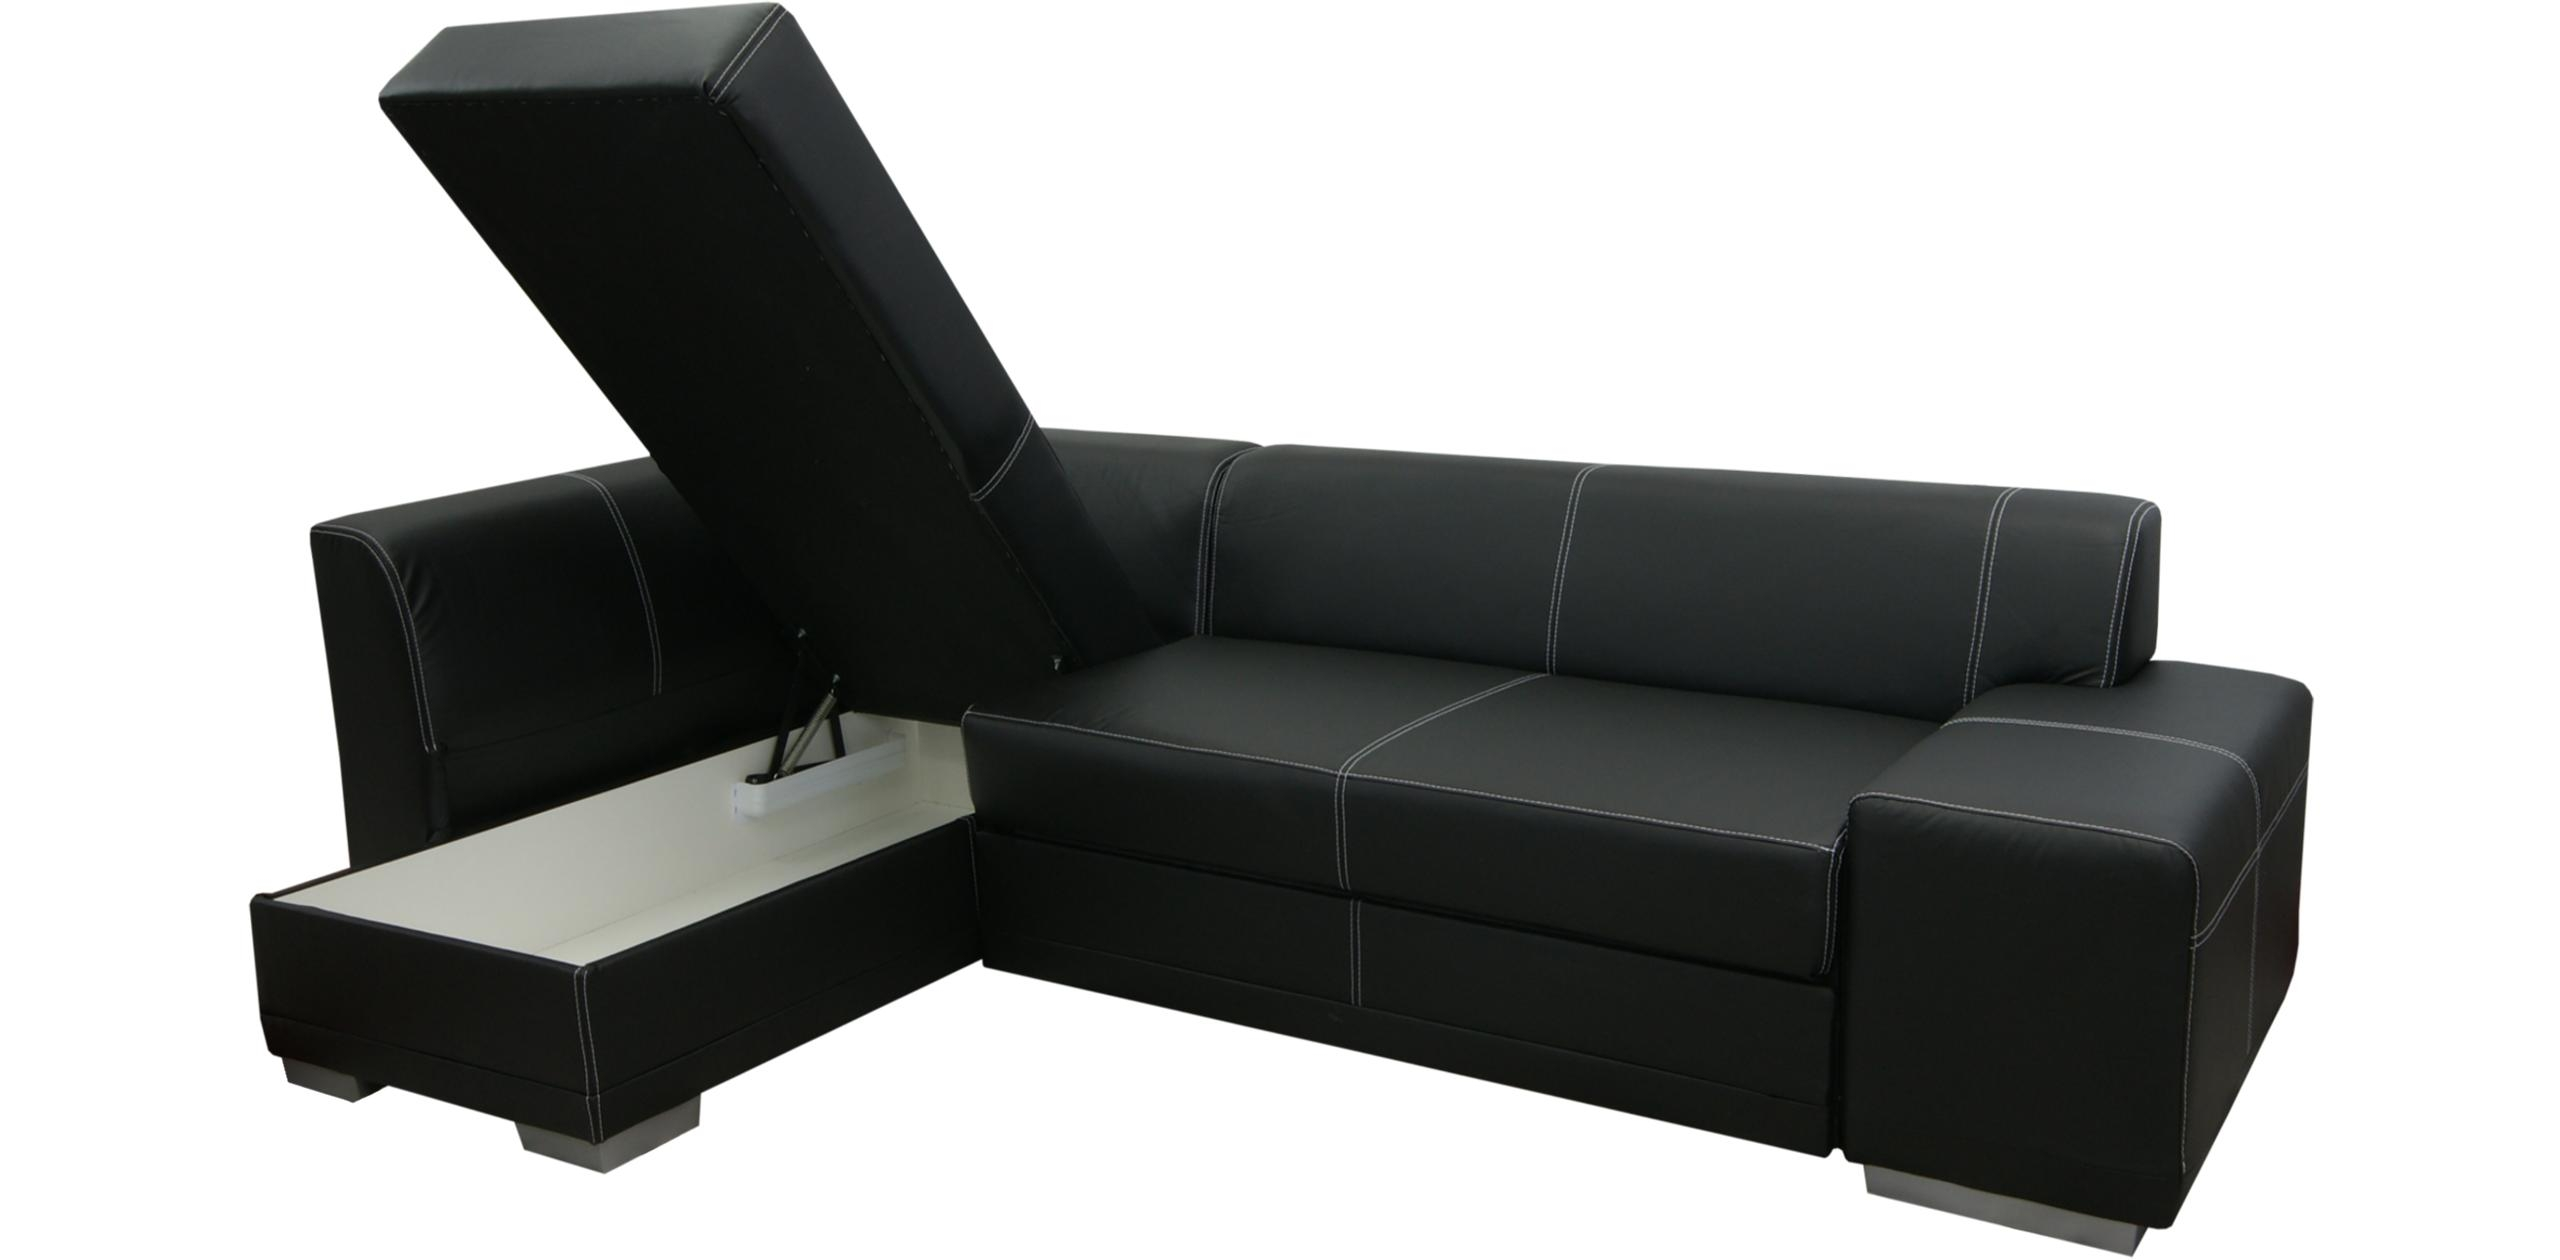 Corner Sofa Bed Second Hand – Leather Sectional Sofa With Regard To Cheap Corner Sofa Beds (Image 6 of 20)